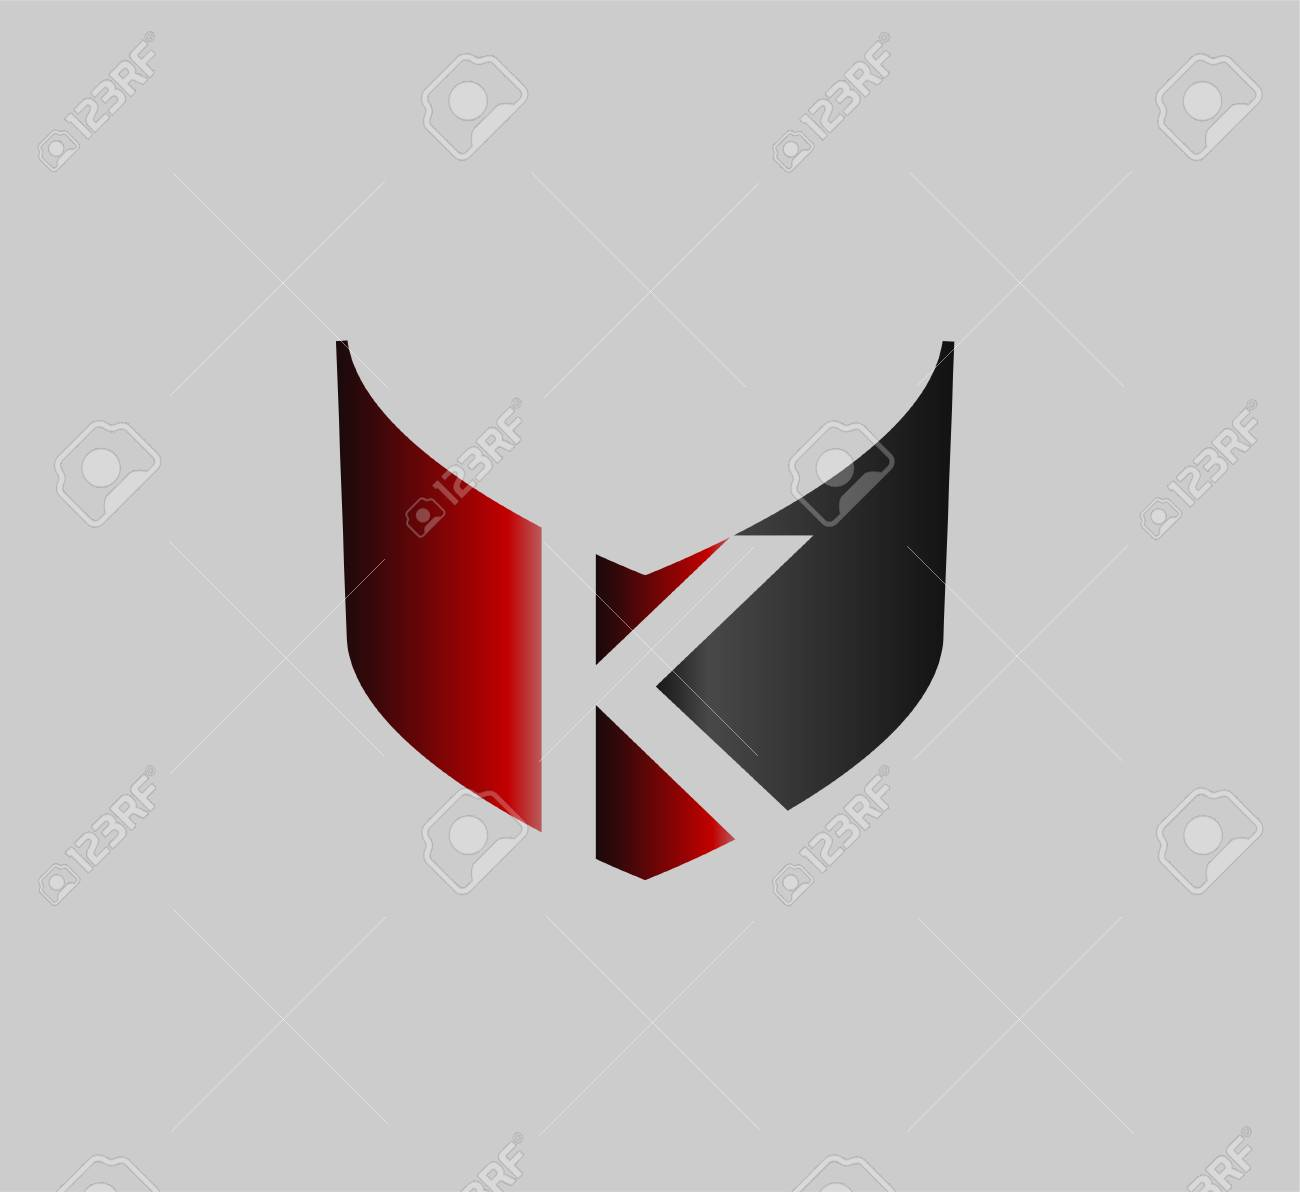 letter k logo icons design template elements royalty free cliparts